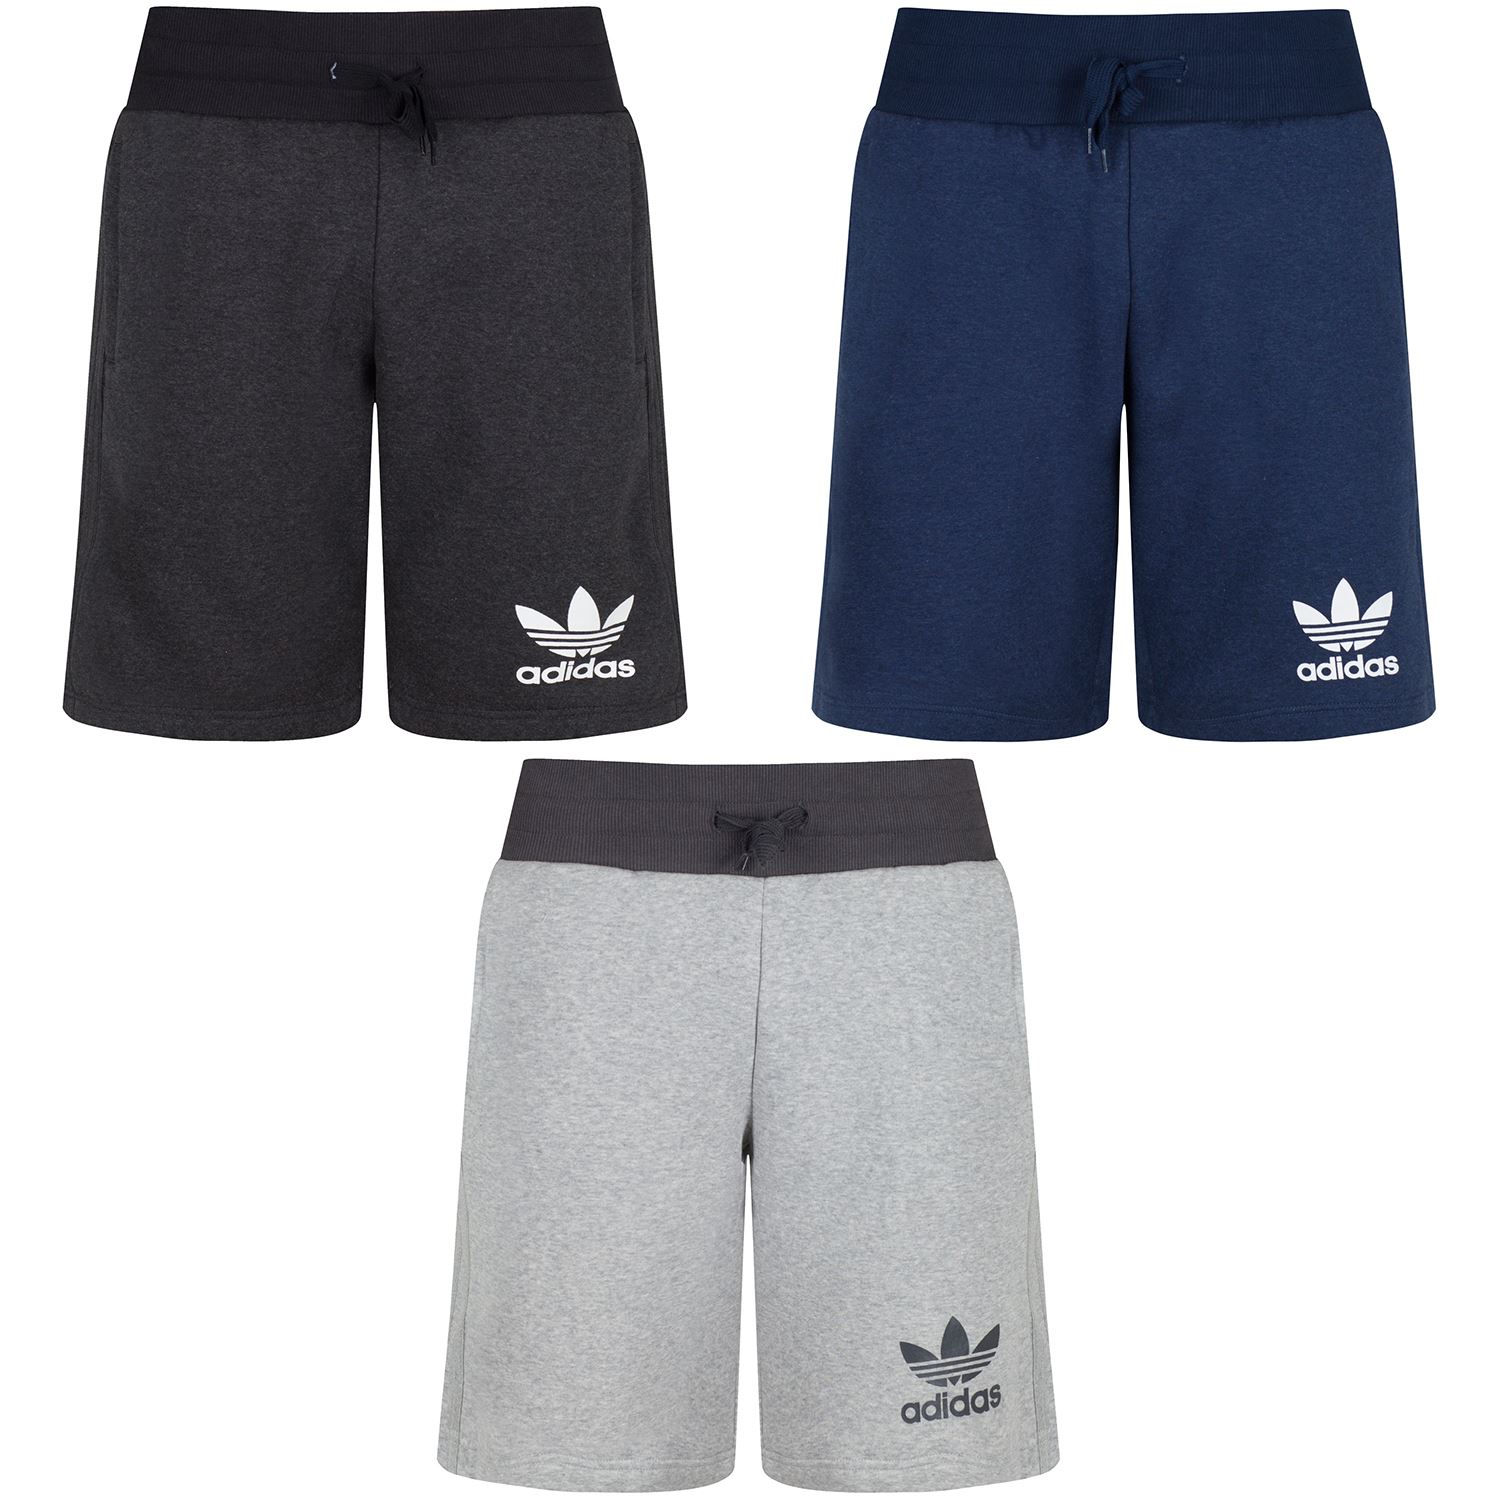 ADIDAS ORIGINALS SPORT ESS JERSEY SHORTS GREY NAVY DARK GREY SIZES S M L XL